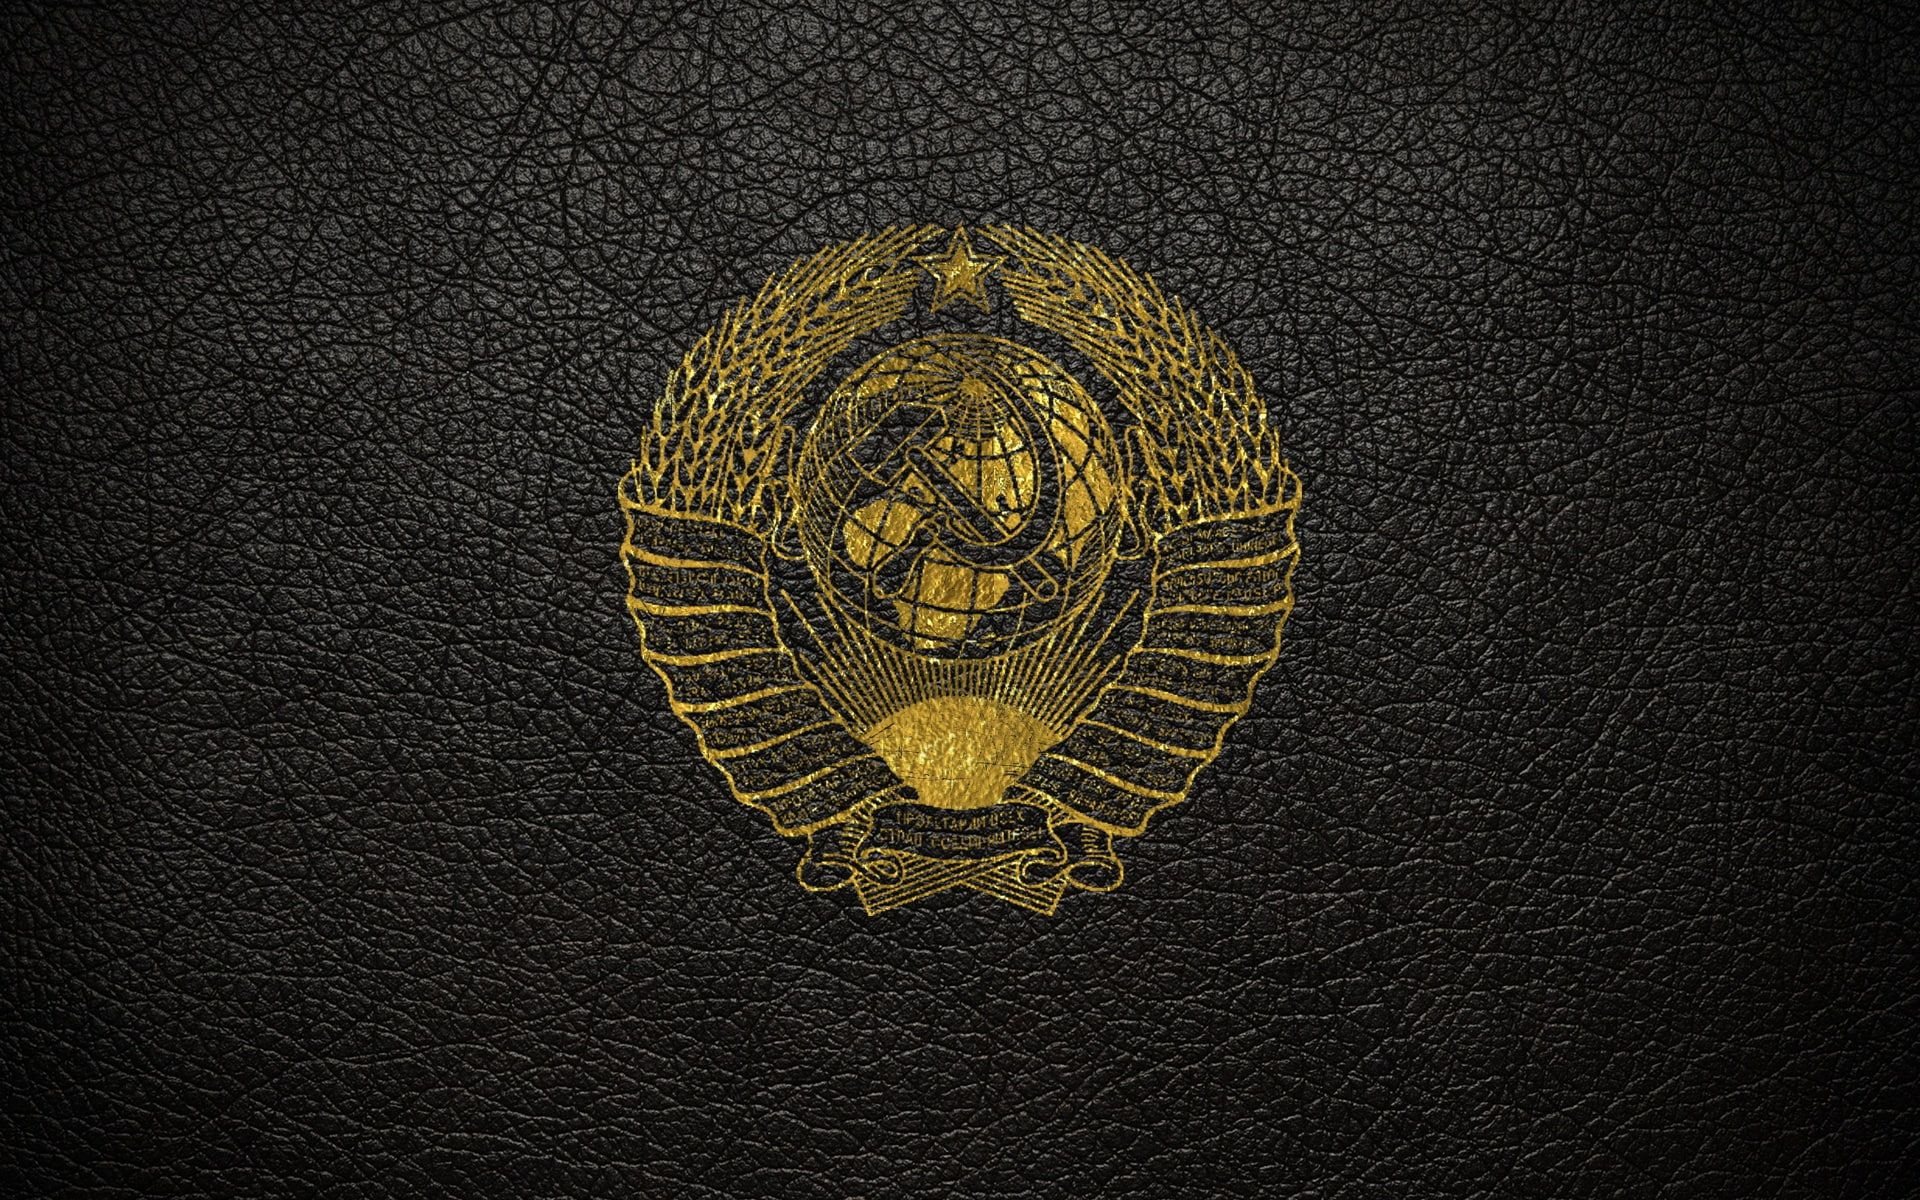 Leather Ussr Gold Coat Of Arms The Coat Of Arms Of The Ussr 1080p Wallpaper Hdwallpaper Desktop Coat Of Arms Hd Wallpaper Soviet Art Hammer and sickle hd wallpaper